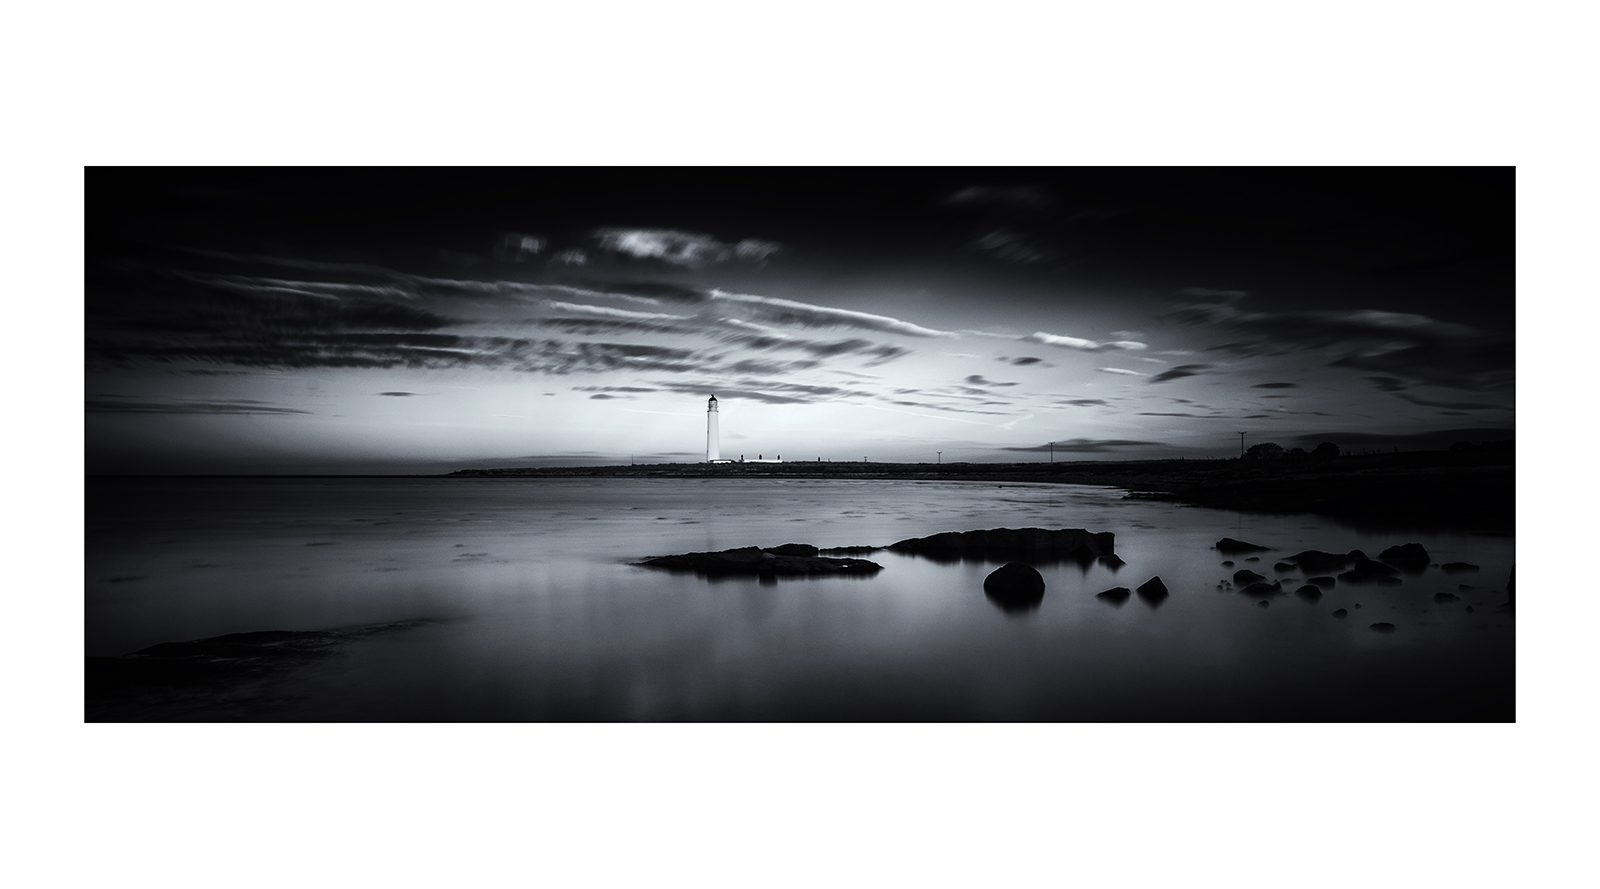 BARNS NESS PANORAMIC  (LIMITED EDITION PRINT)  -  CLICK HERE TO SELECT AND PURCHASE THIS IMAGE